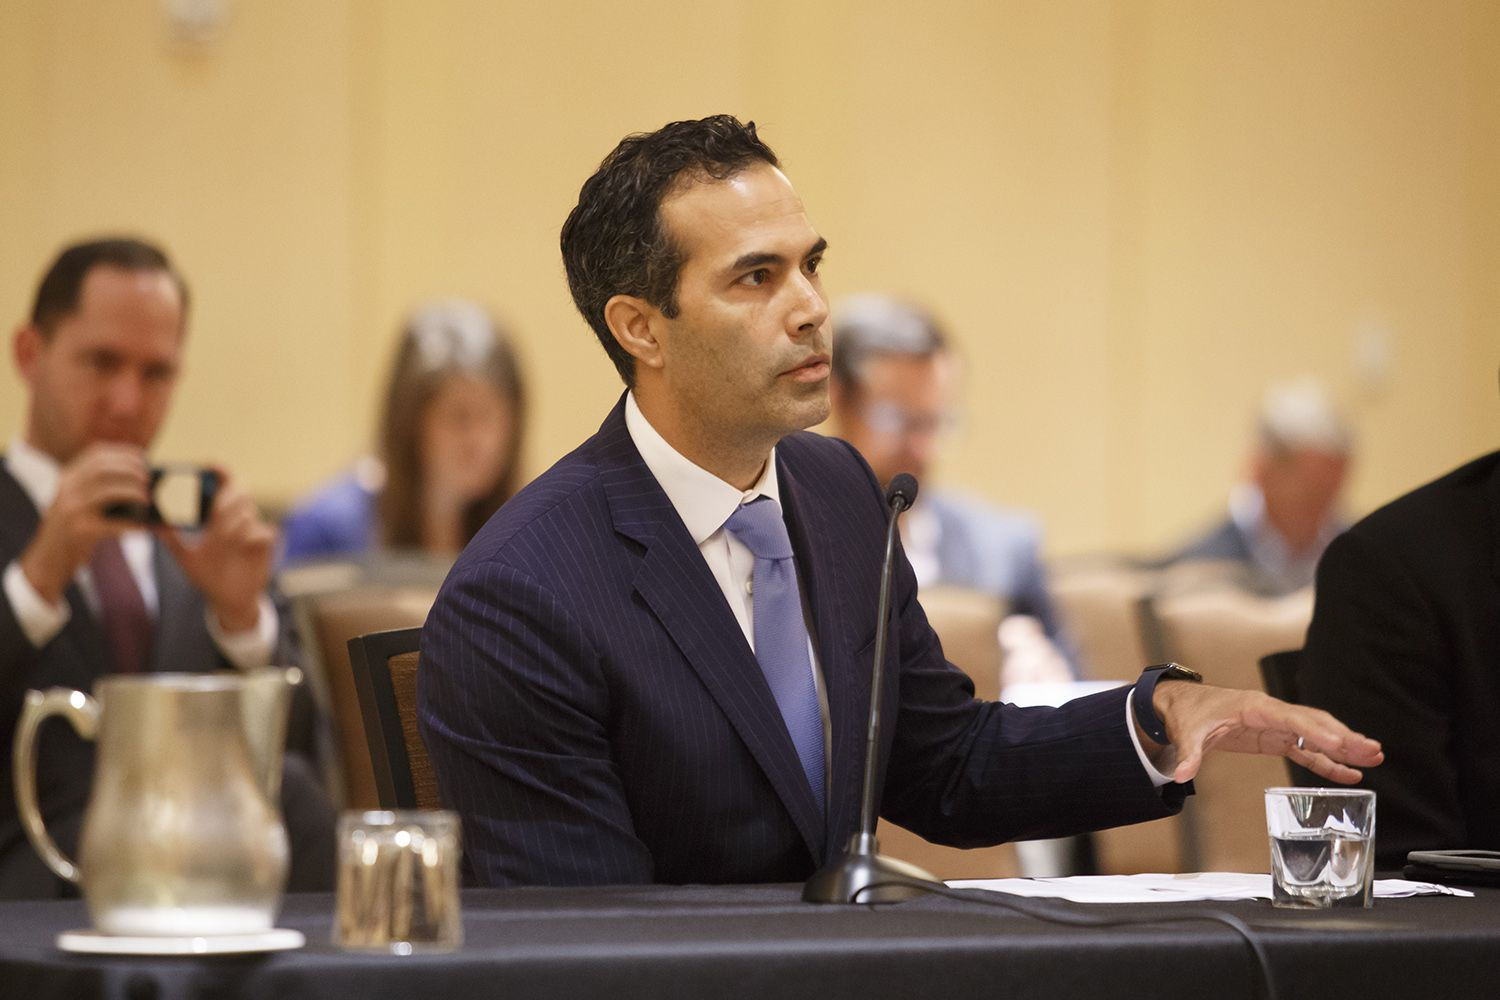 Texas Land Commissioner George P. Bush speaks to the Texas House of Representatives Committee on Urban Affairs hearing on Harvey in Houston on Monday, October 2, 2017.